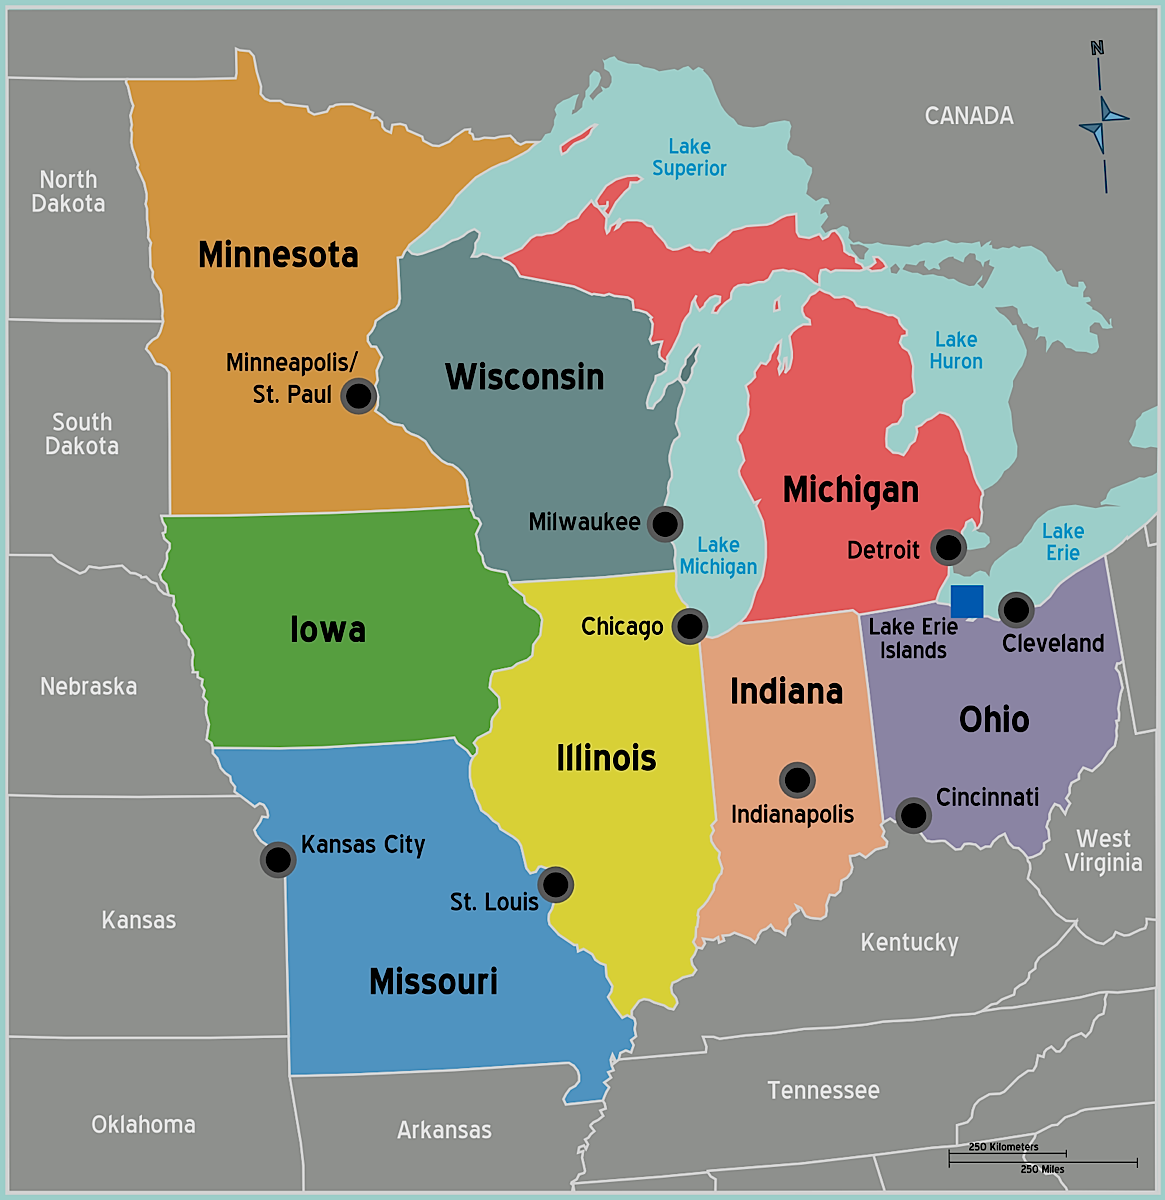 USA Map States And Capitals Georgia Map Showing The Major Travel - Us midwest region map games